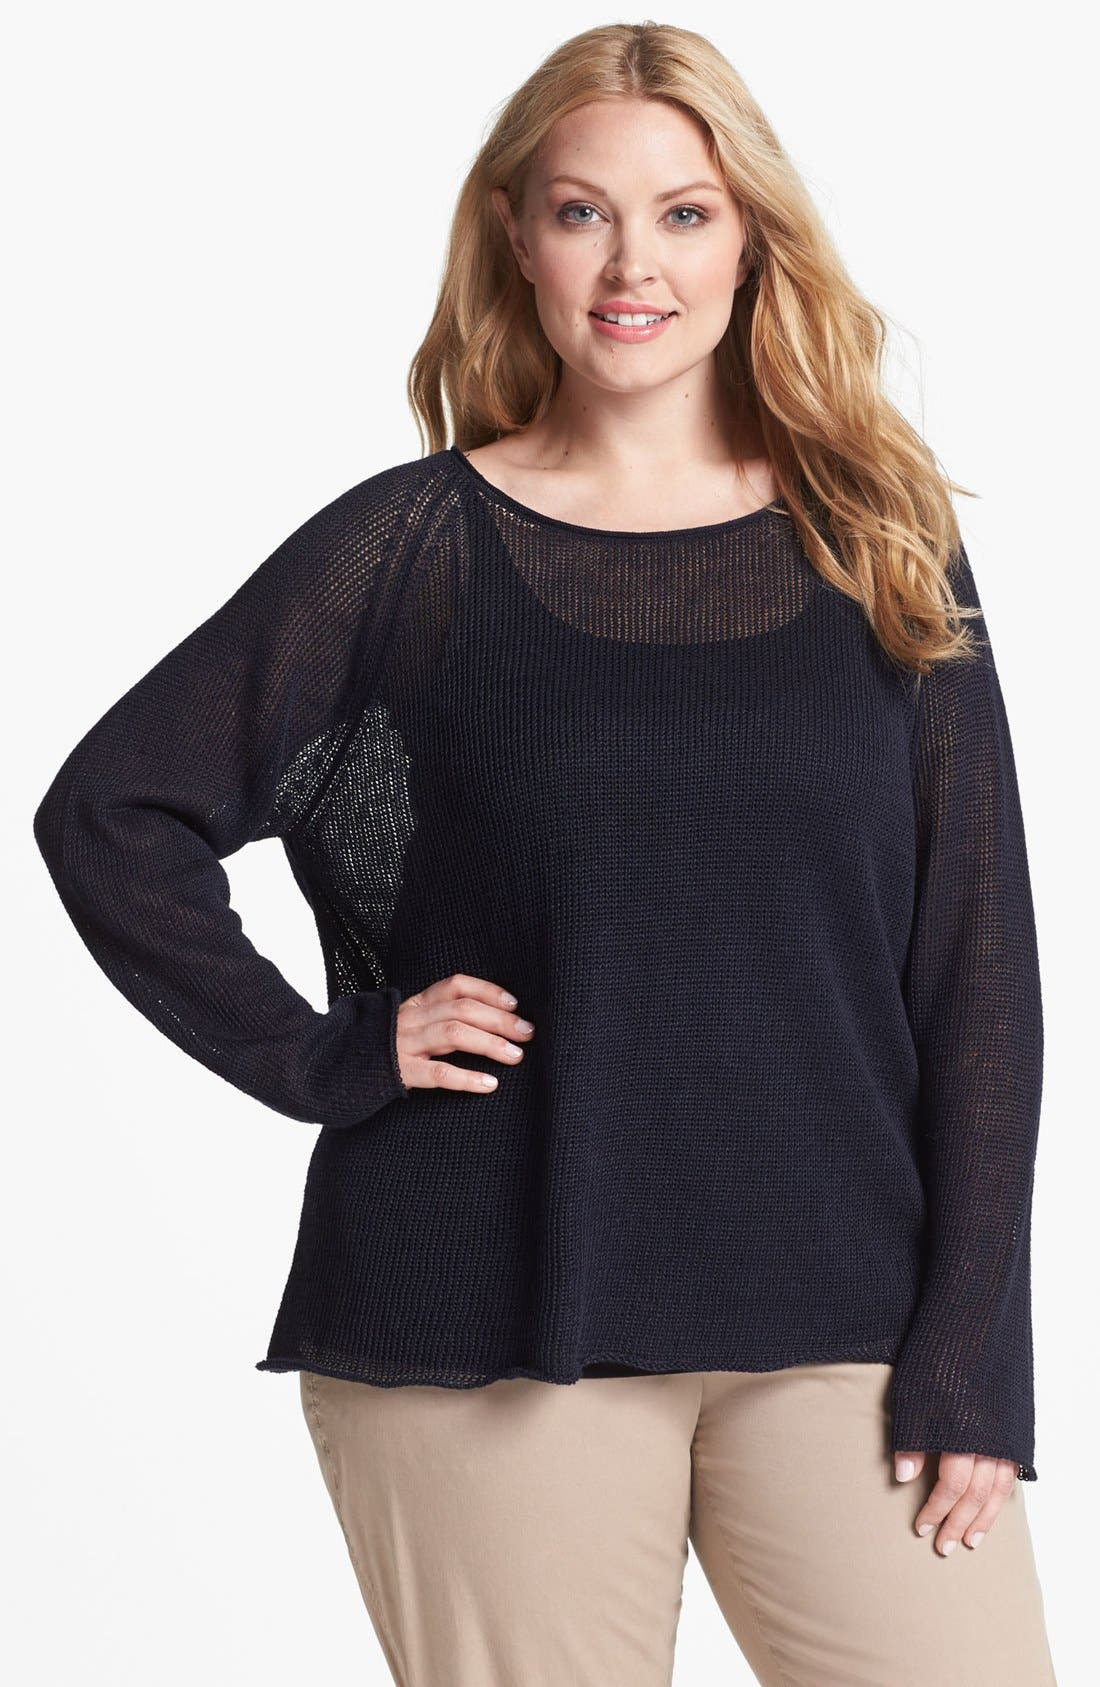 Alternate Image 1 Selected - Eileen Fisher Open Stitch Raglan Sleeve Top (Plus Size)